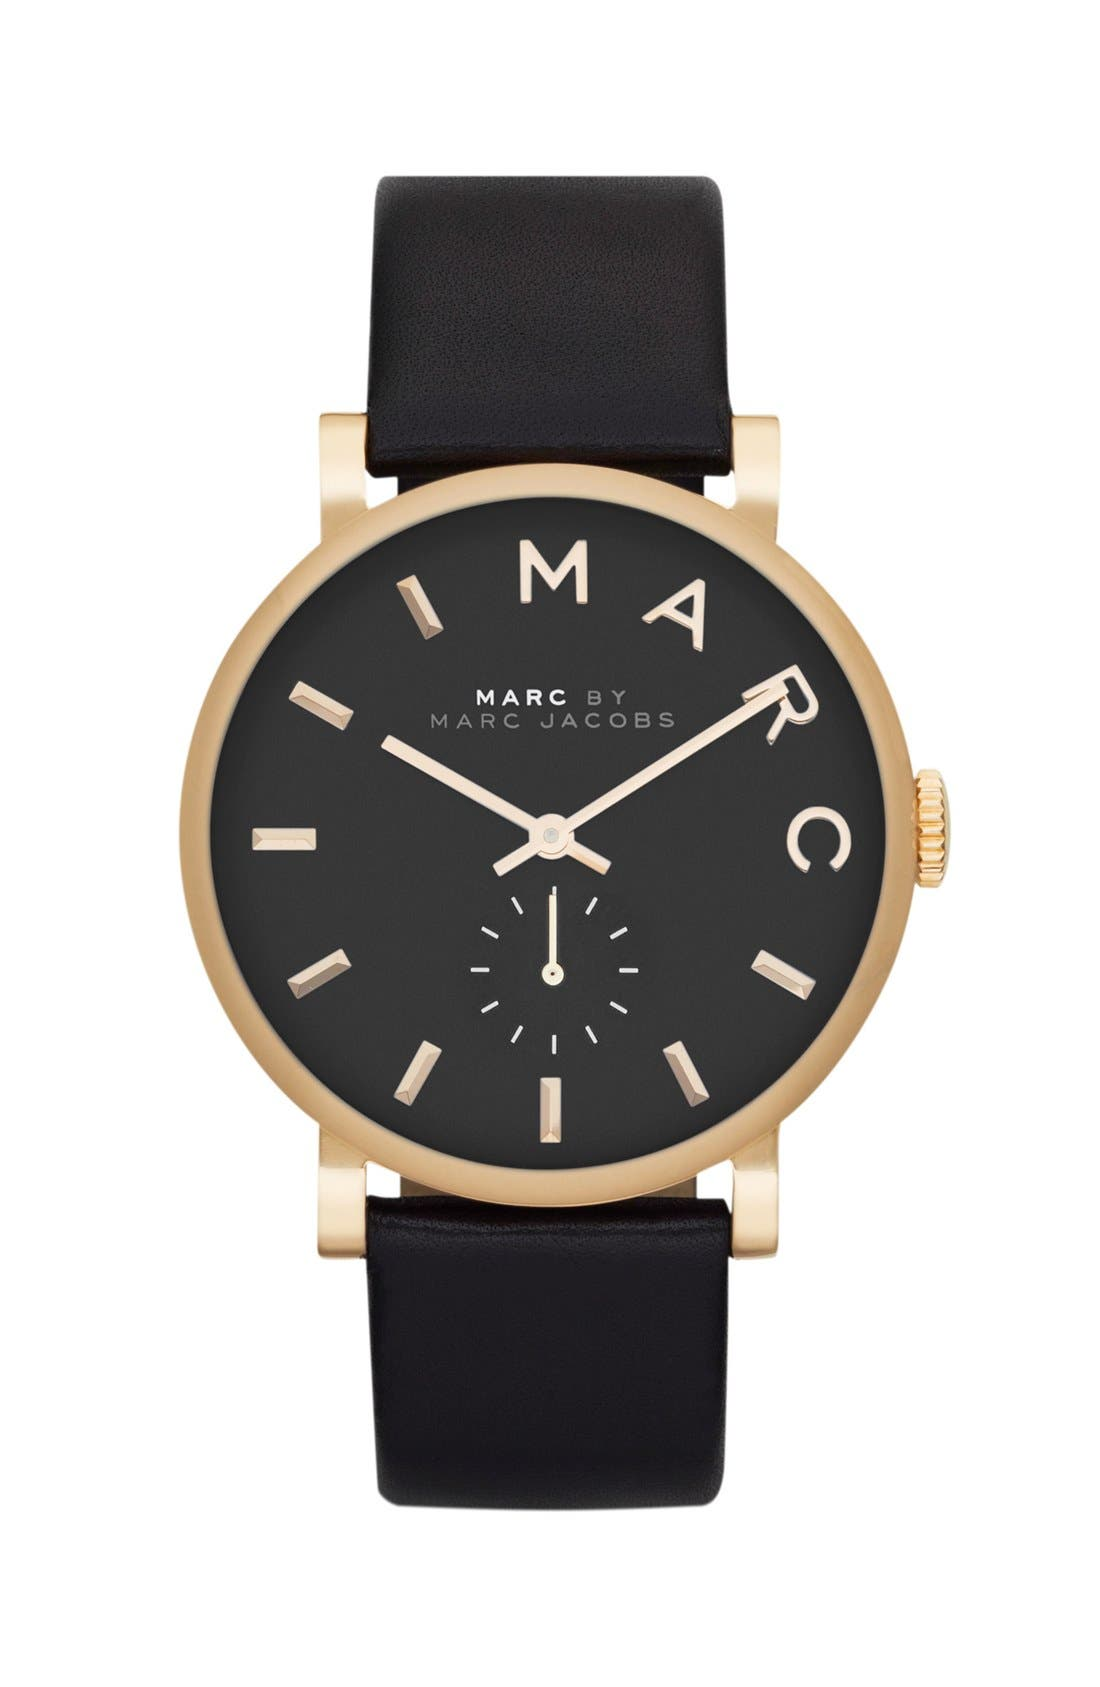 MARC JACOBS 'Baker' Leather Strap Watch, 37mm, Main, color, 001